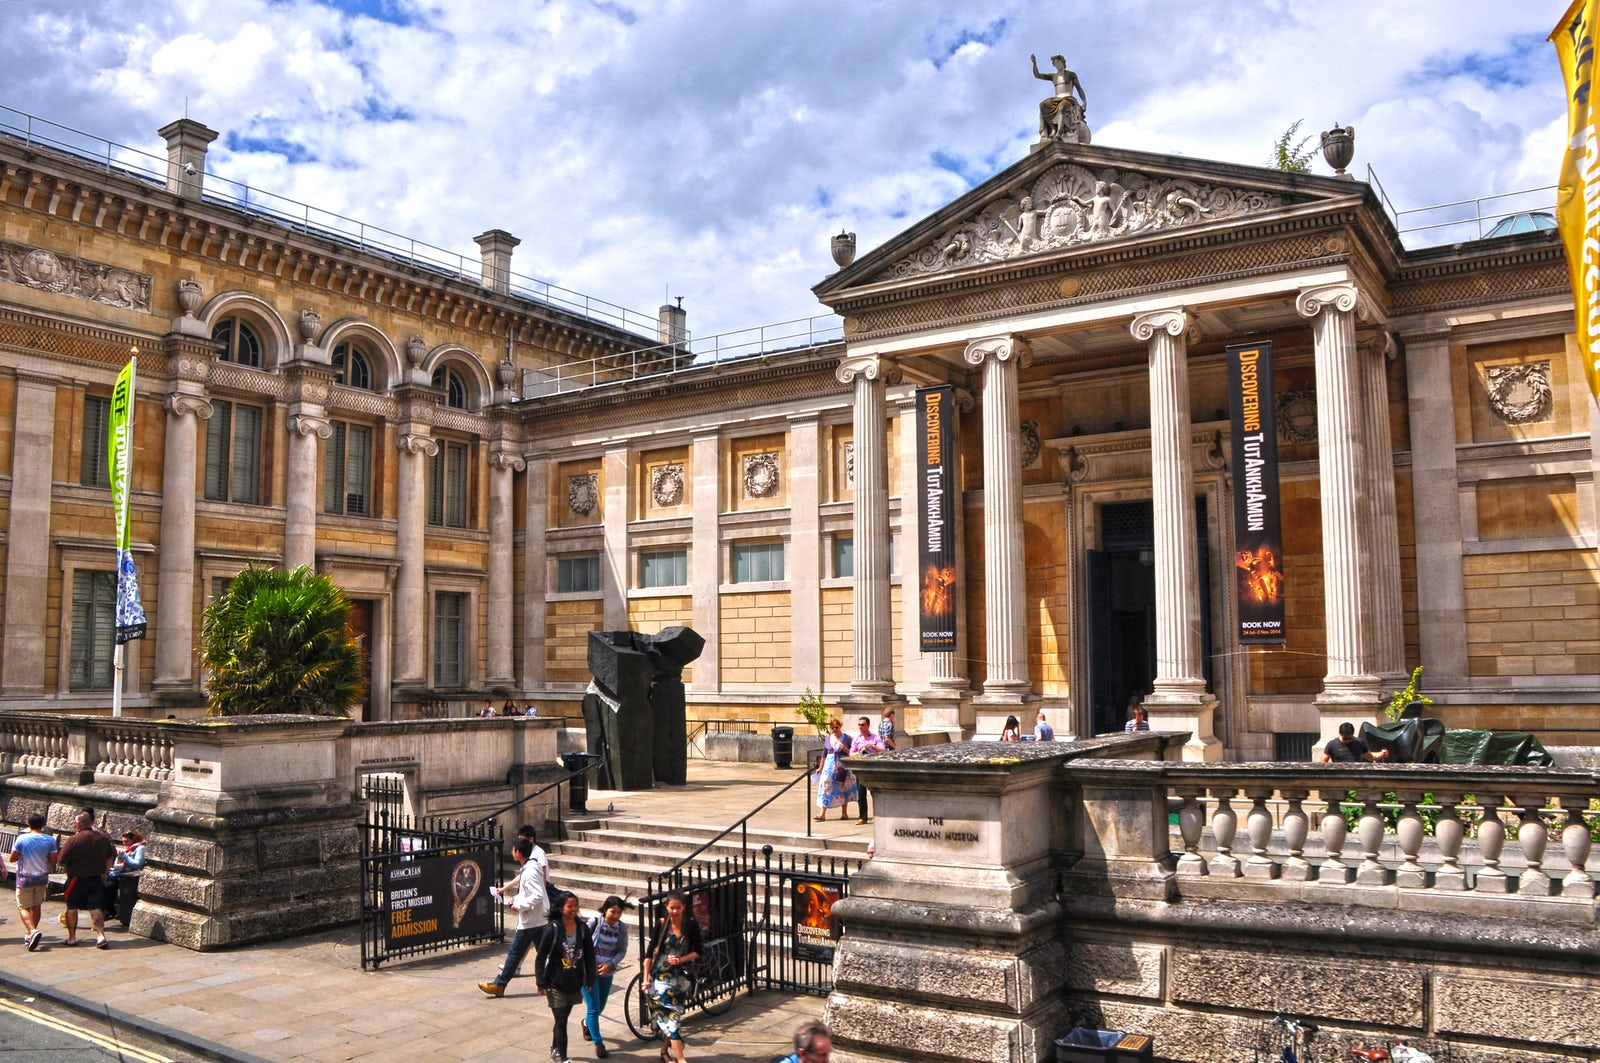 Cover photo credit:©Lewis Clarke/Oxford: Ashmolean Museum/CC BY-SA 2.0